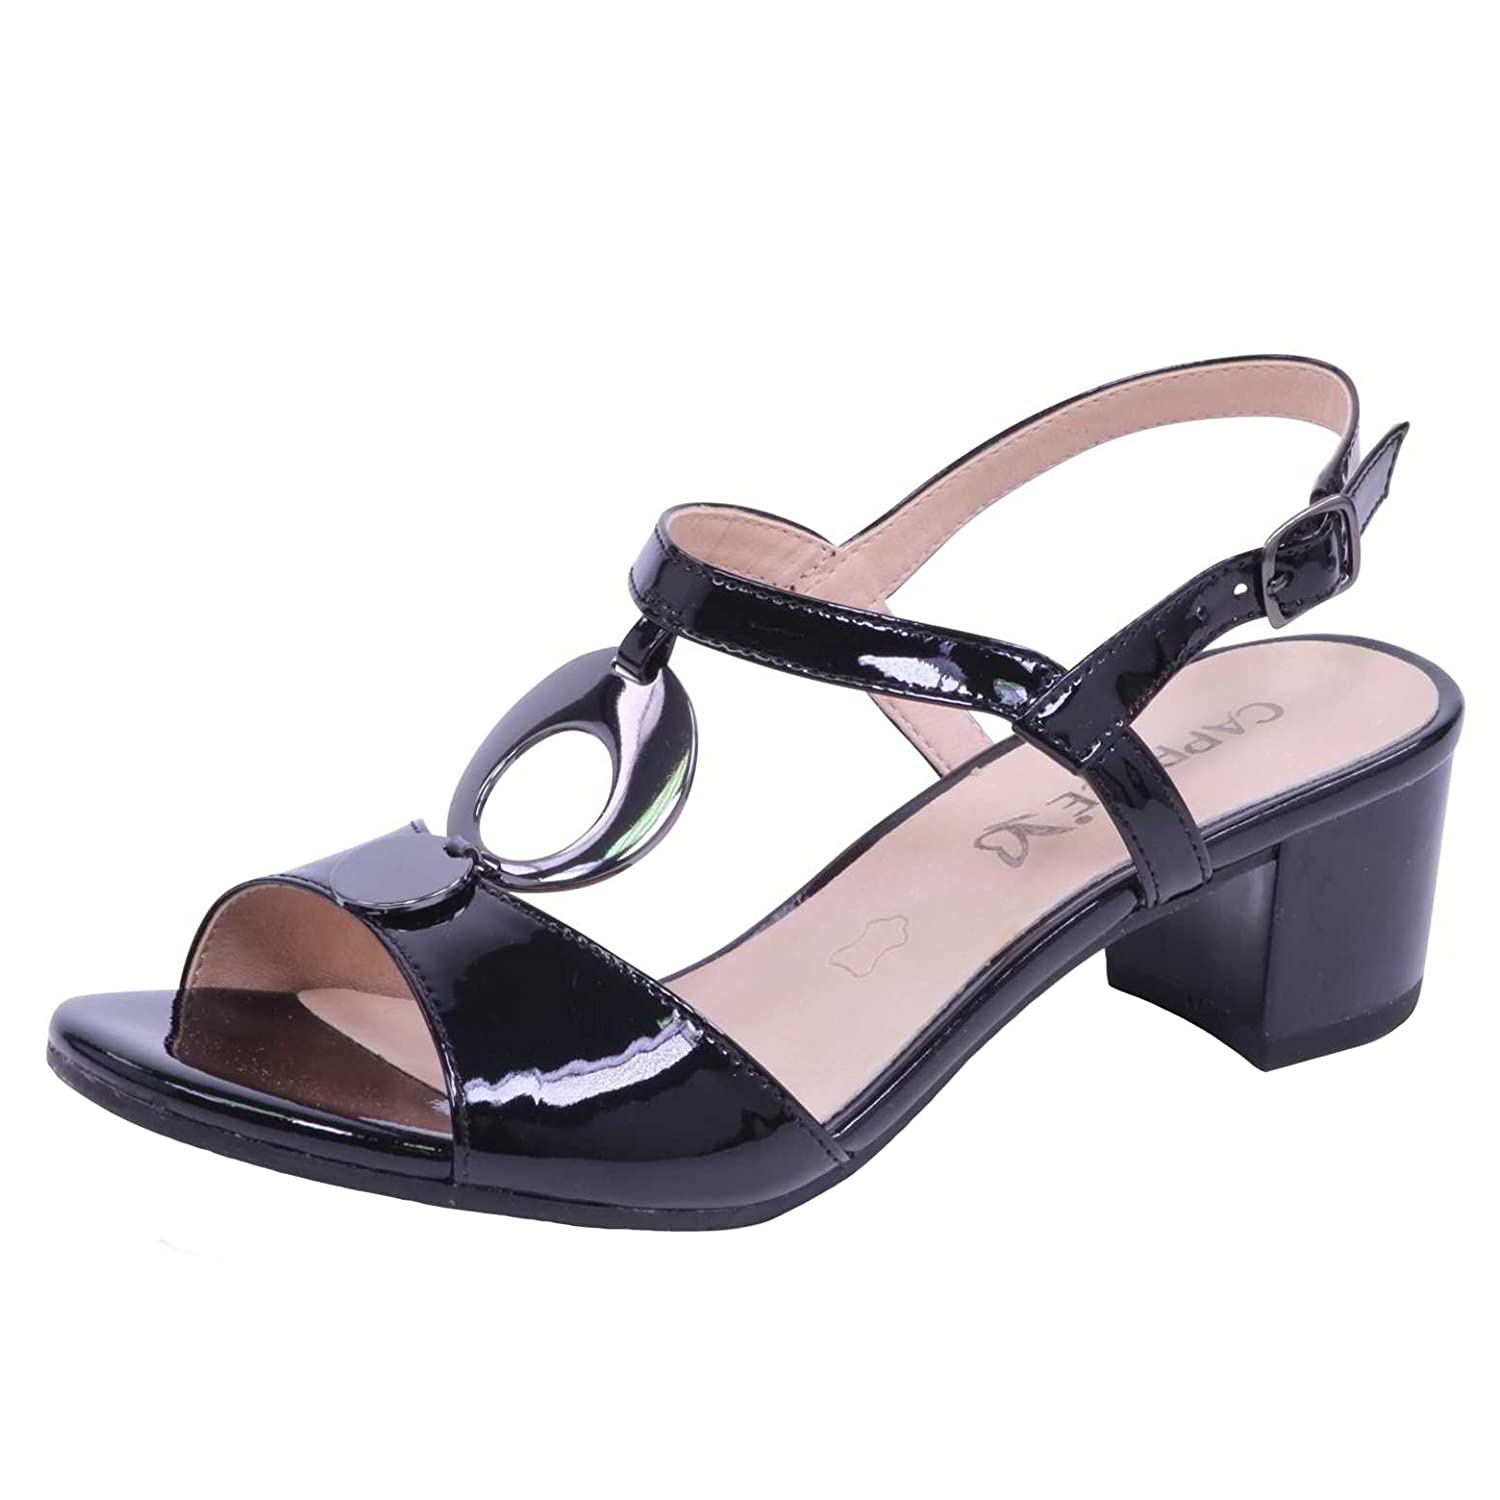 Caprice Galaxy Womens Strappy Block Heeled Sandals Mary Janes Straps Circle Pointed Toe Wedges Shoes Black